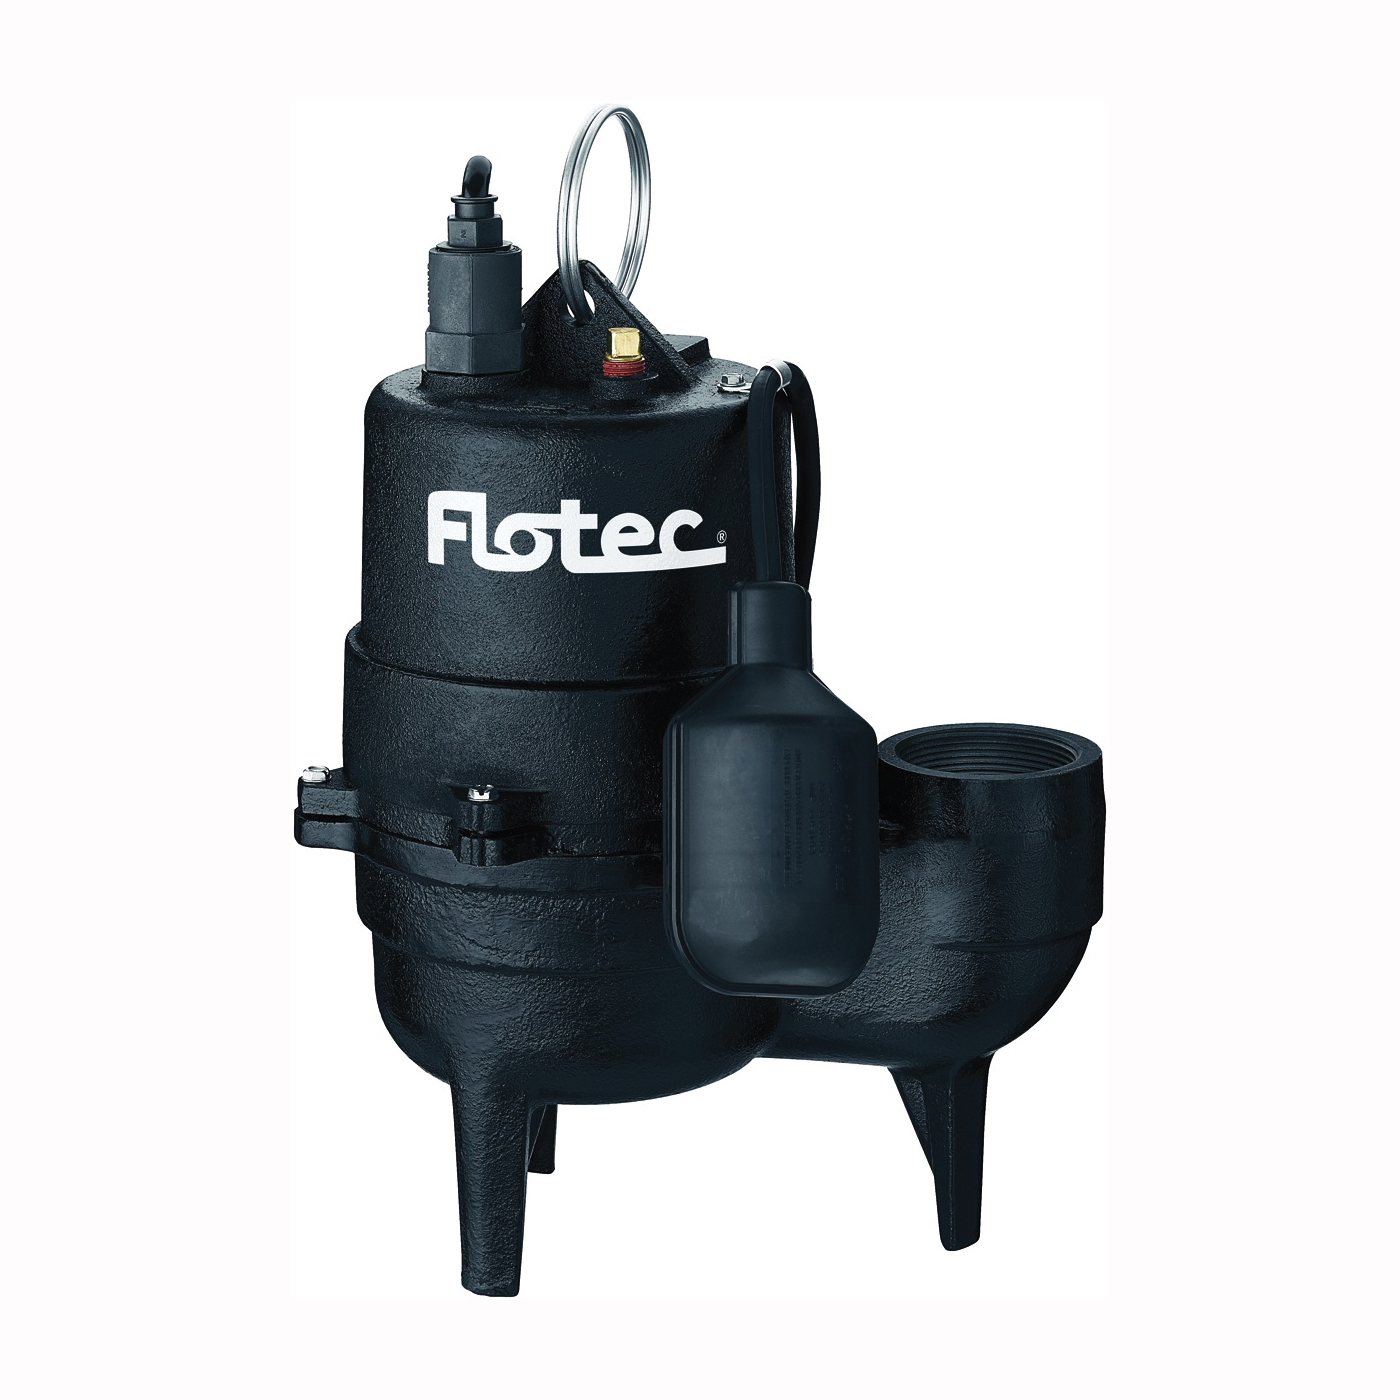 Picture of Flotec FPSE3601A-04 Sewage Pump, 13 A, 115 V, 0.5 hp, 2 in Outlet, 18 ft Max Head, 9000 gph, Iron